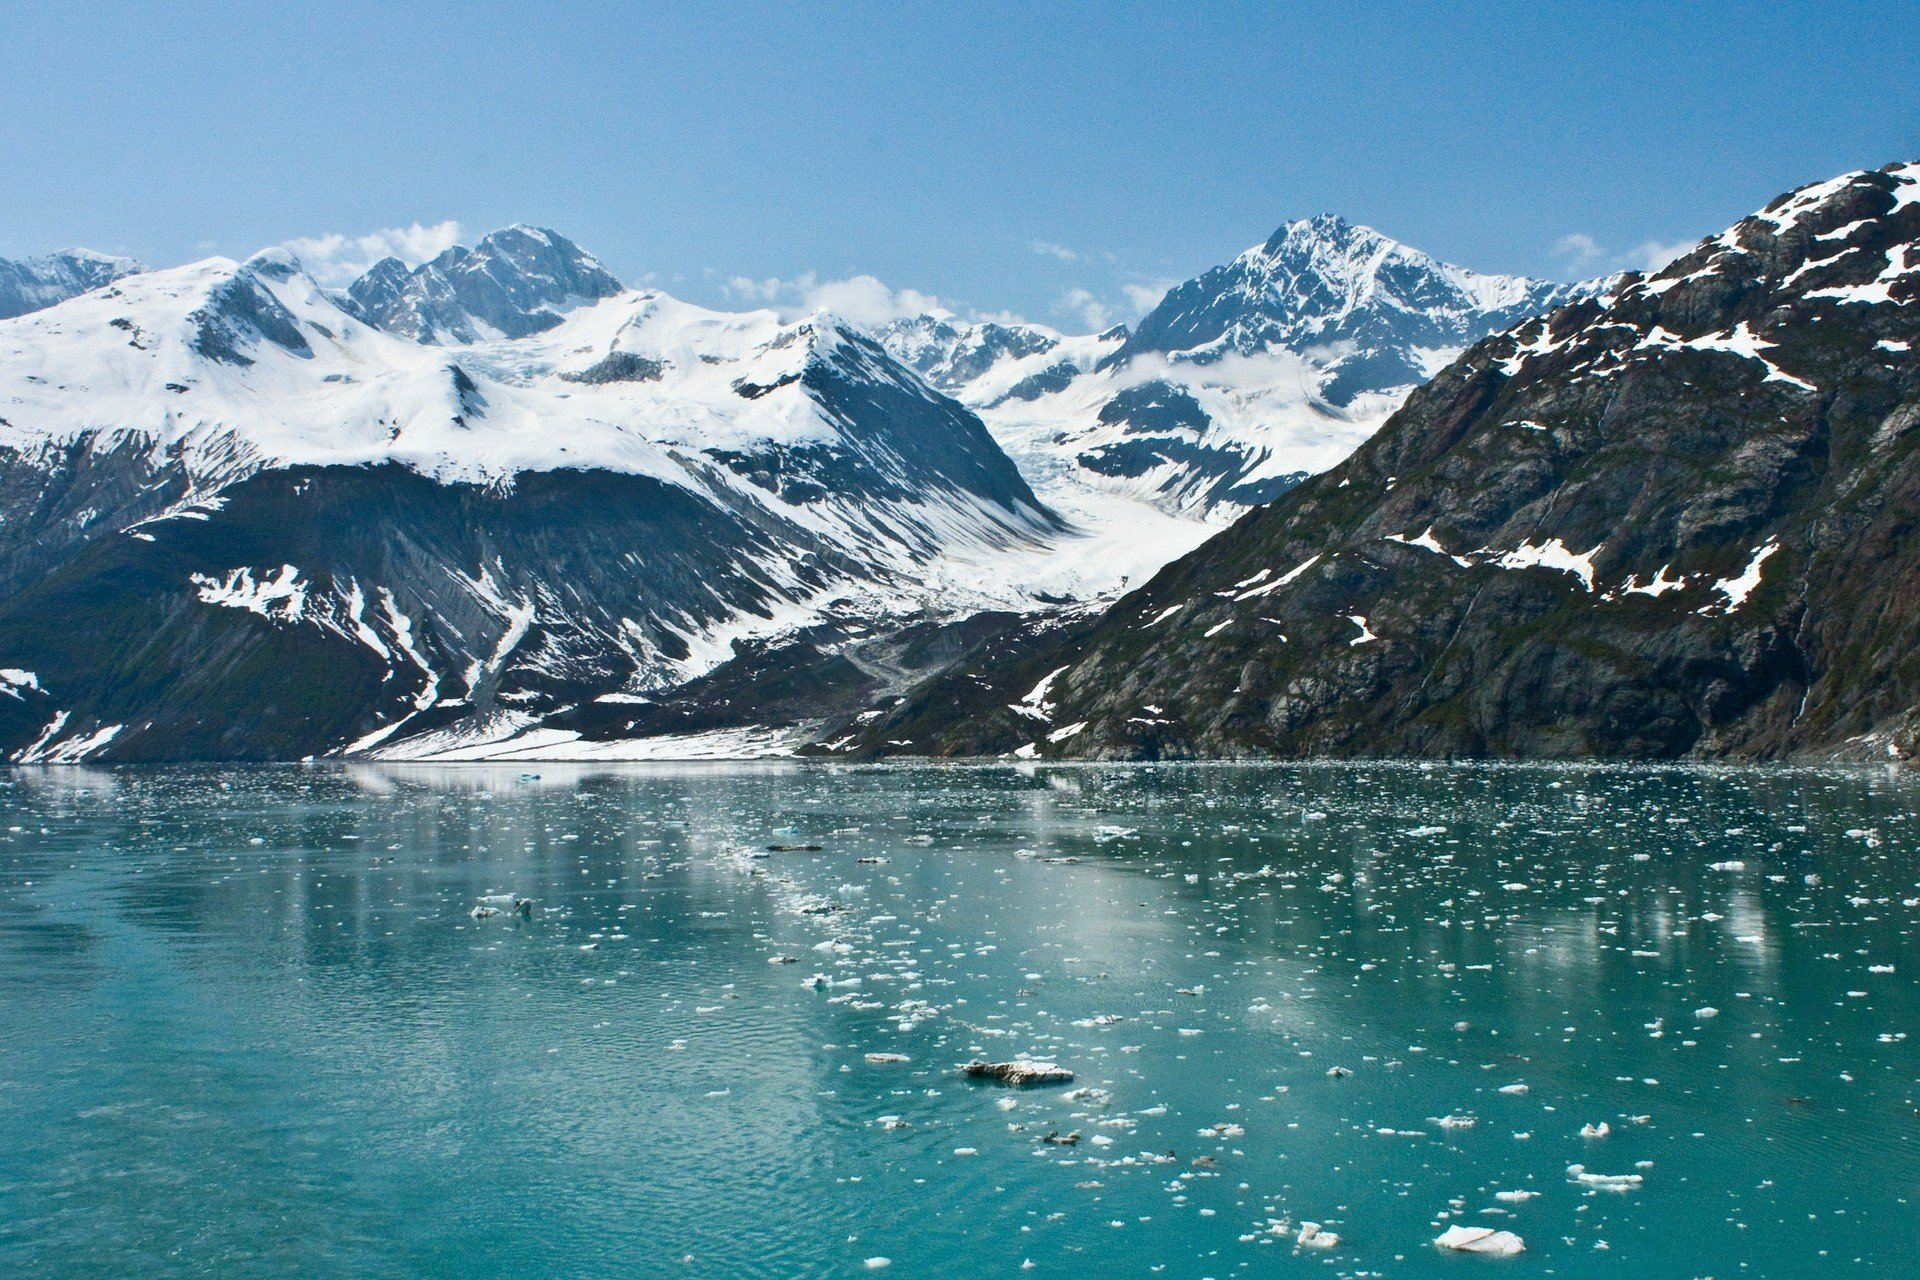 Alaska Glacier - a beautifully scenic place in the USA